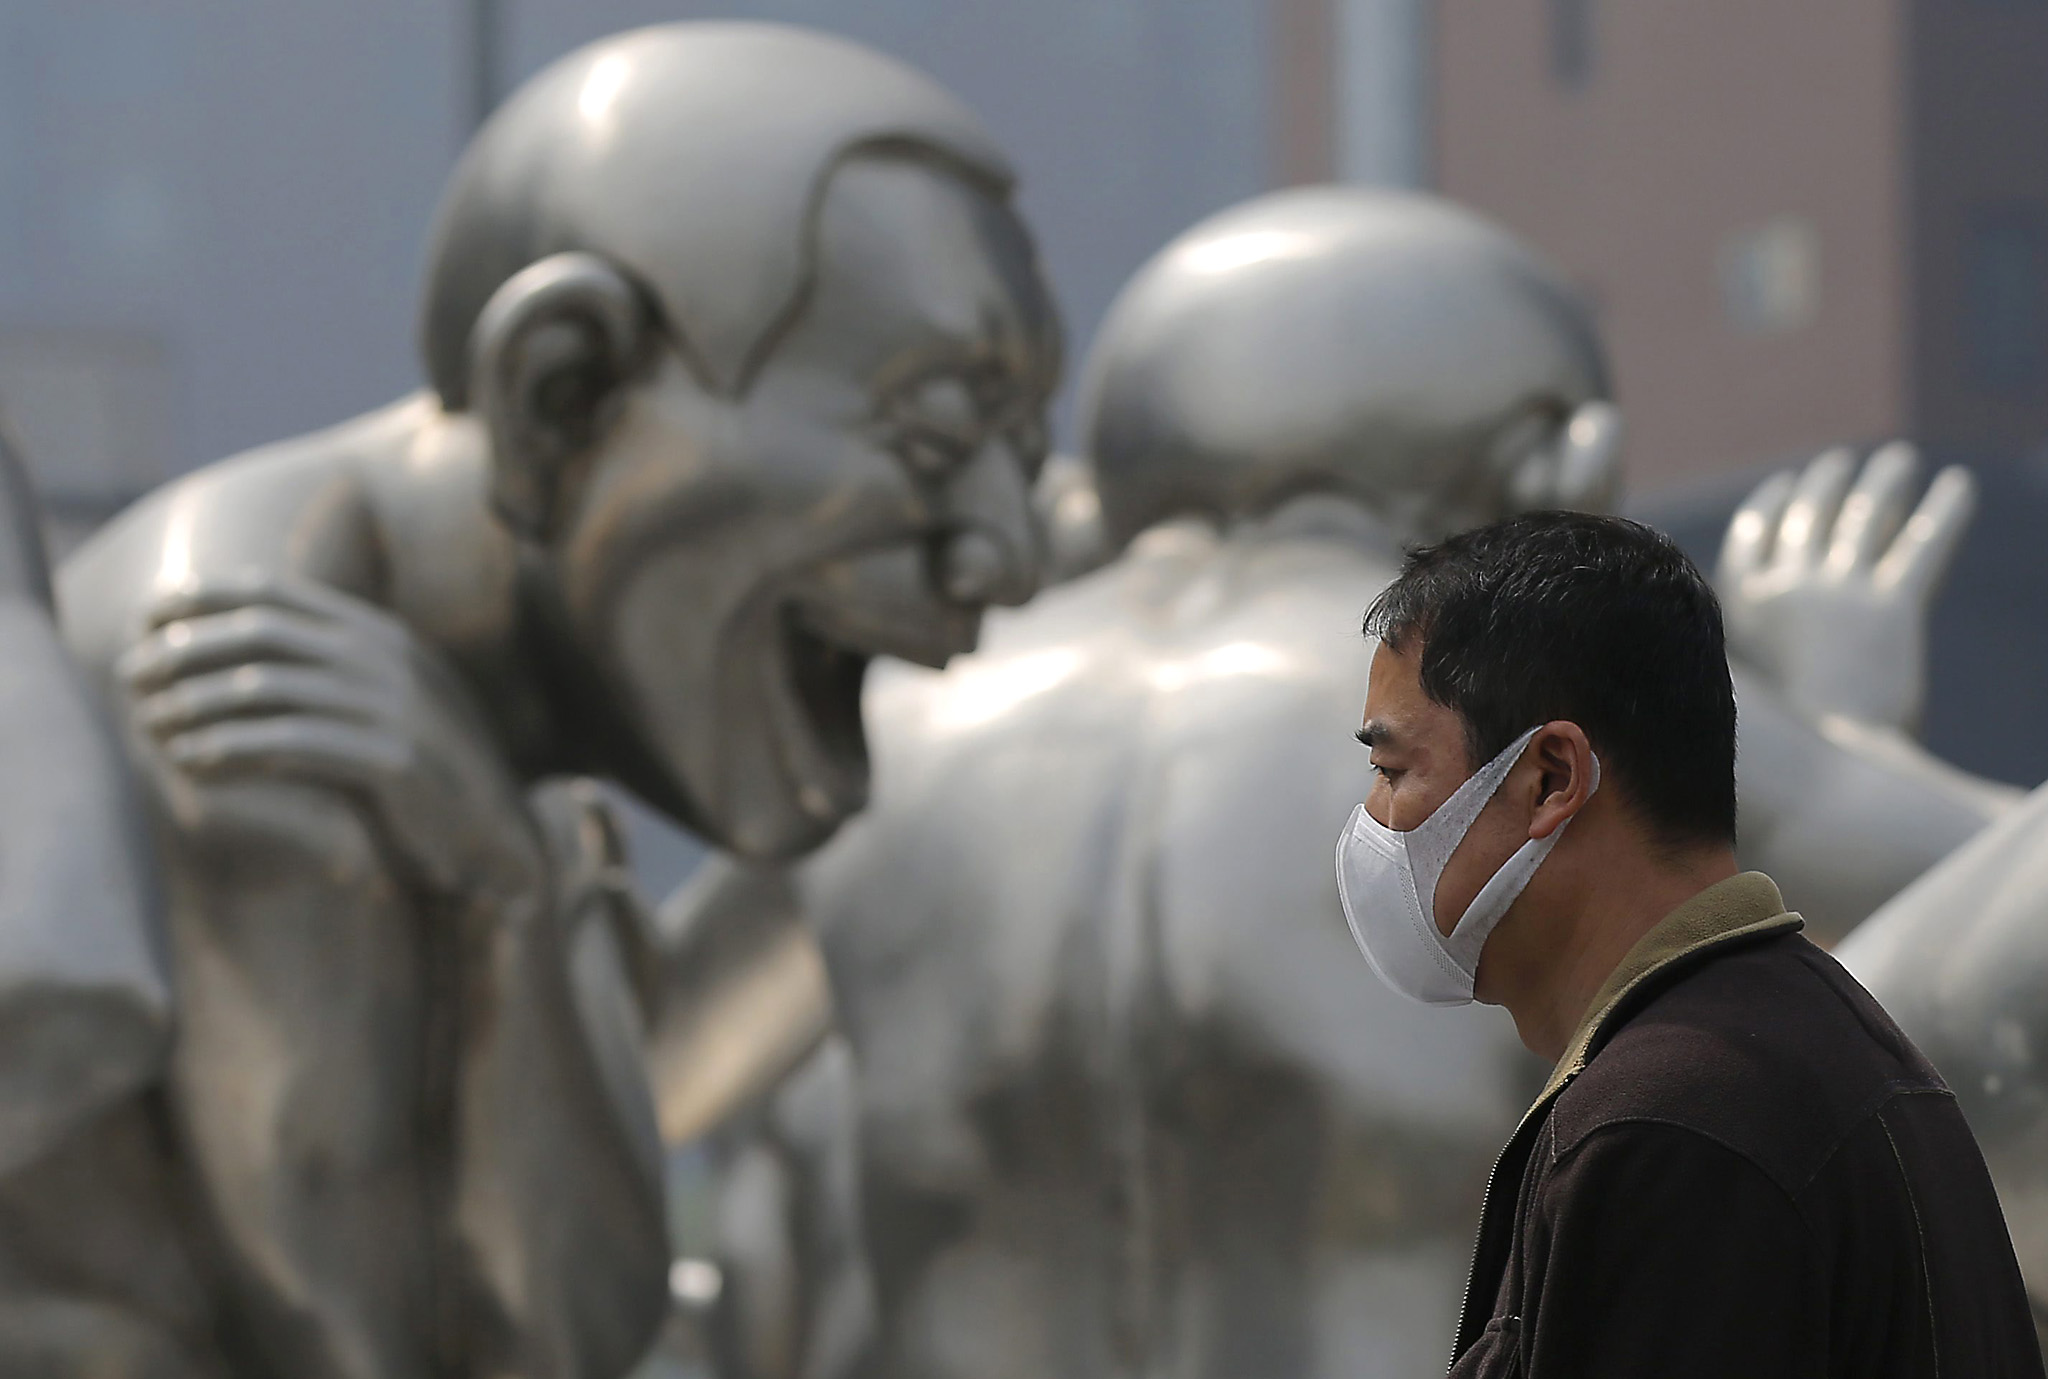 Air pollution in Beijing...epaselect epa05256265 A Chinese, wearing a mask, passes by a sculpture during a smoggy day in Beijing city, China, 13 April 2016. The Chinese Ministry of Environmental Protection received about 15,000 public complaints about pollution in 2015. The air pollution tip-offs became the top 78.3 percent of all complaints received through the ministry's hotline and 68 percent through the WeChat, according to the media reports.  EPA/WU HONG